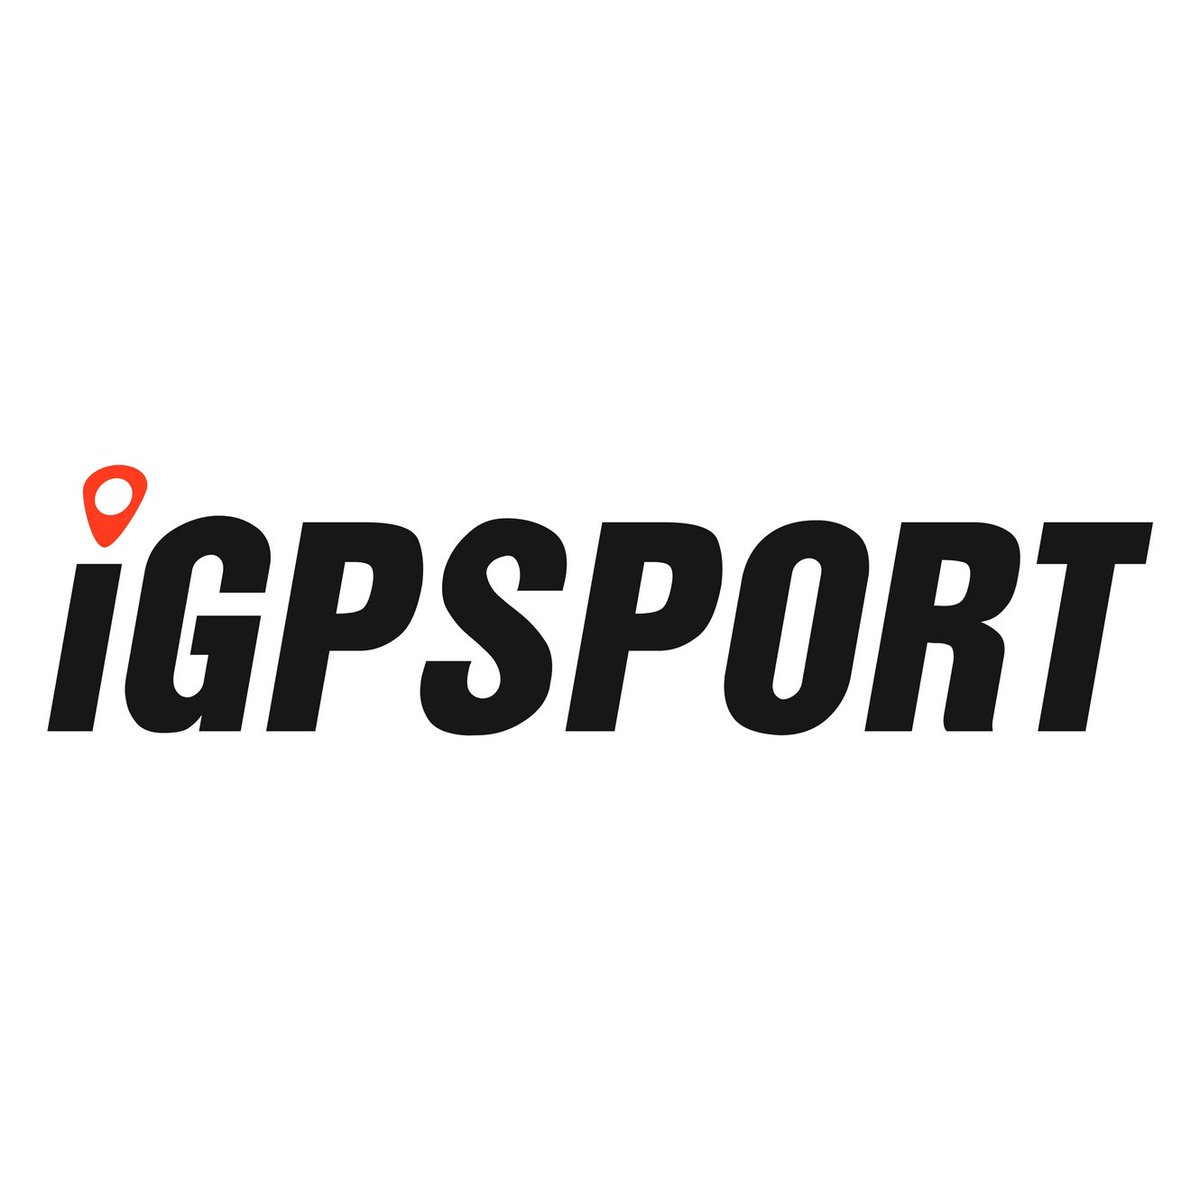 For the introduction of our latest product iGS520, please click on the link: https://t.co/hA607TBMmO   #8thanniversary #iGPSPORT   Facebook: https://t.co/tL51h5ddCK  YouTube: https://t.co/4n0OuAT4tb   #Cycling #Bike #Roadcycling #Bikecomputer #Bikelife #WorldBicycleDay https://t.co/rJ3BBLxFuF